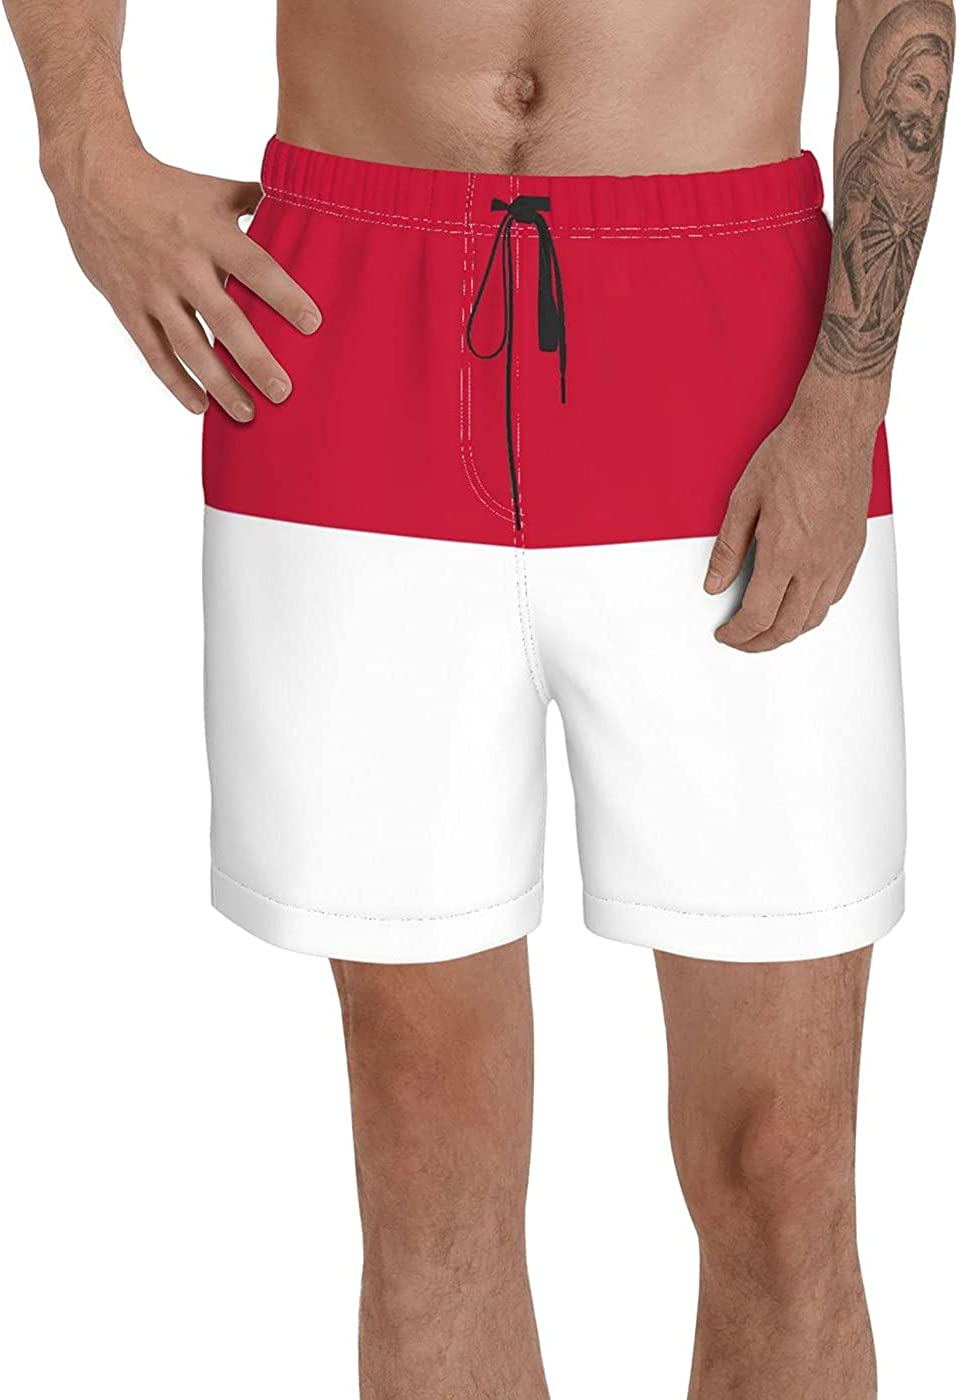 Count Indonesia Flag Men's 3D Printed Funny Summer Quick Dry Swim Short Board Shorts with